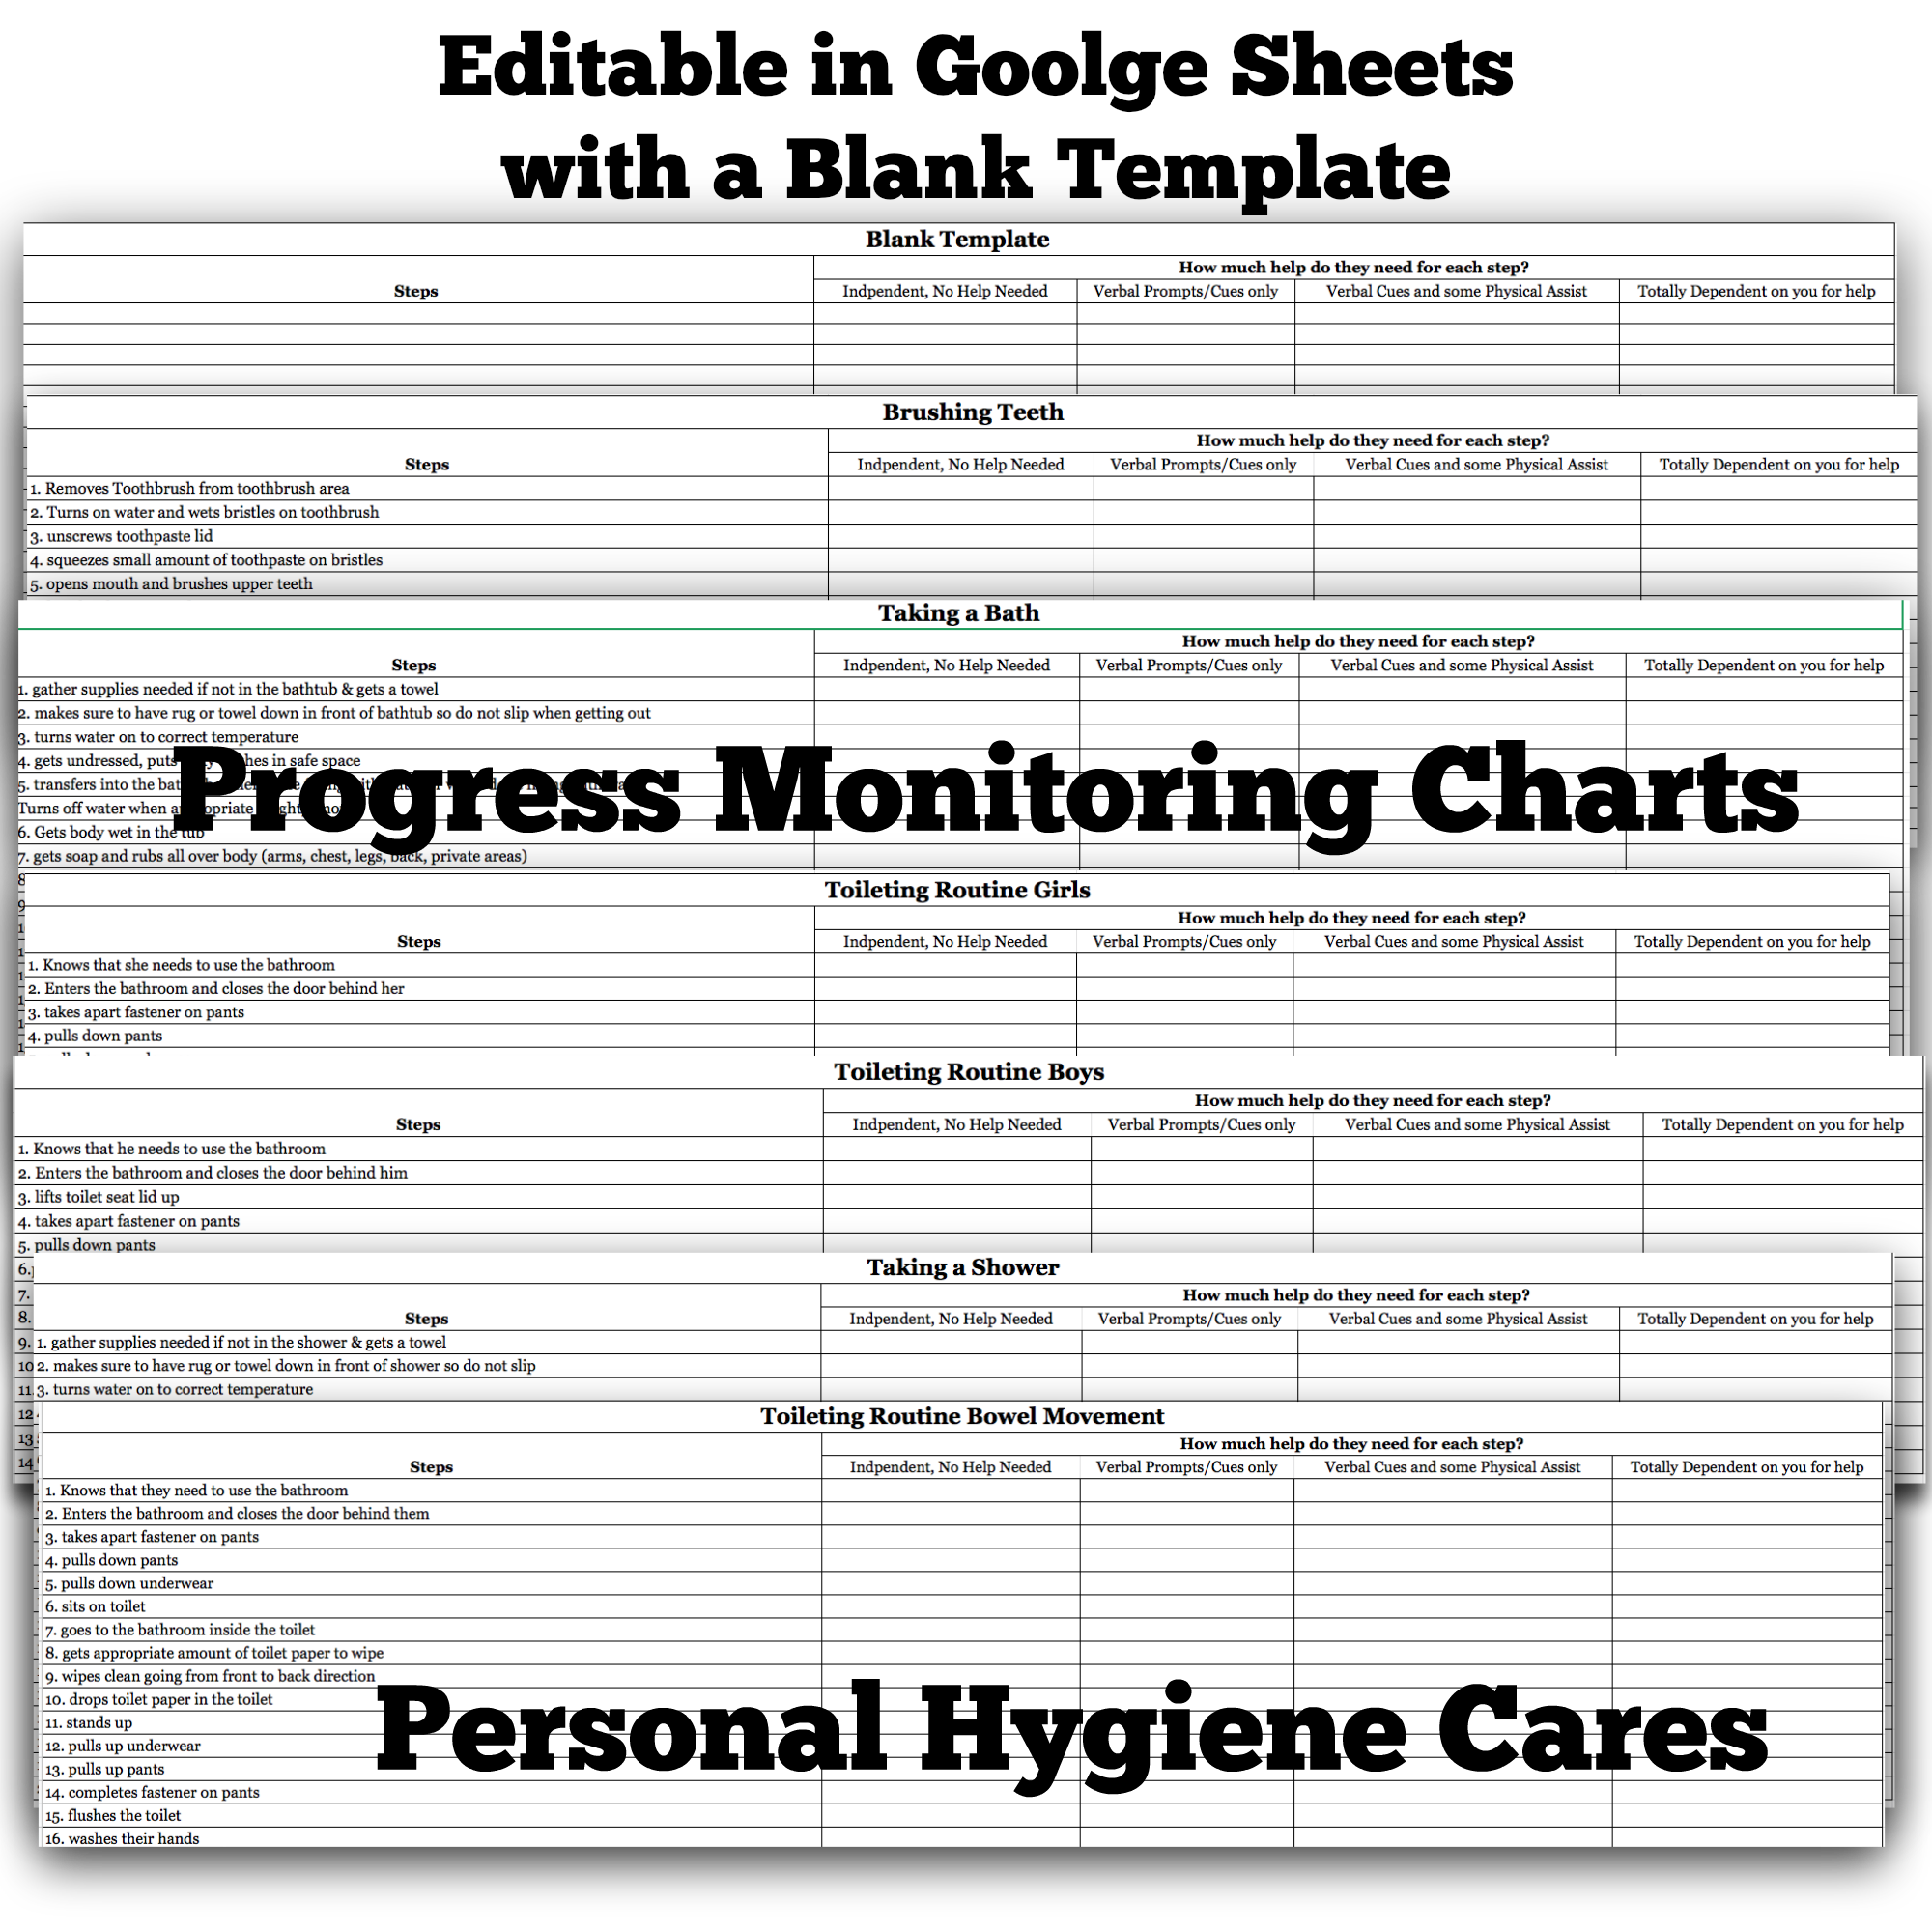 Progress Monitoring charts life skills course display image